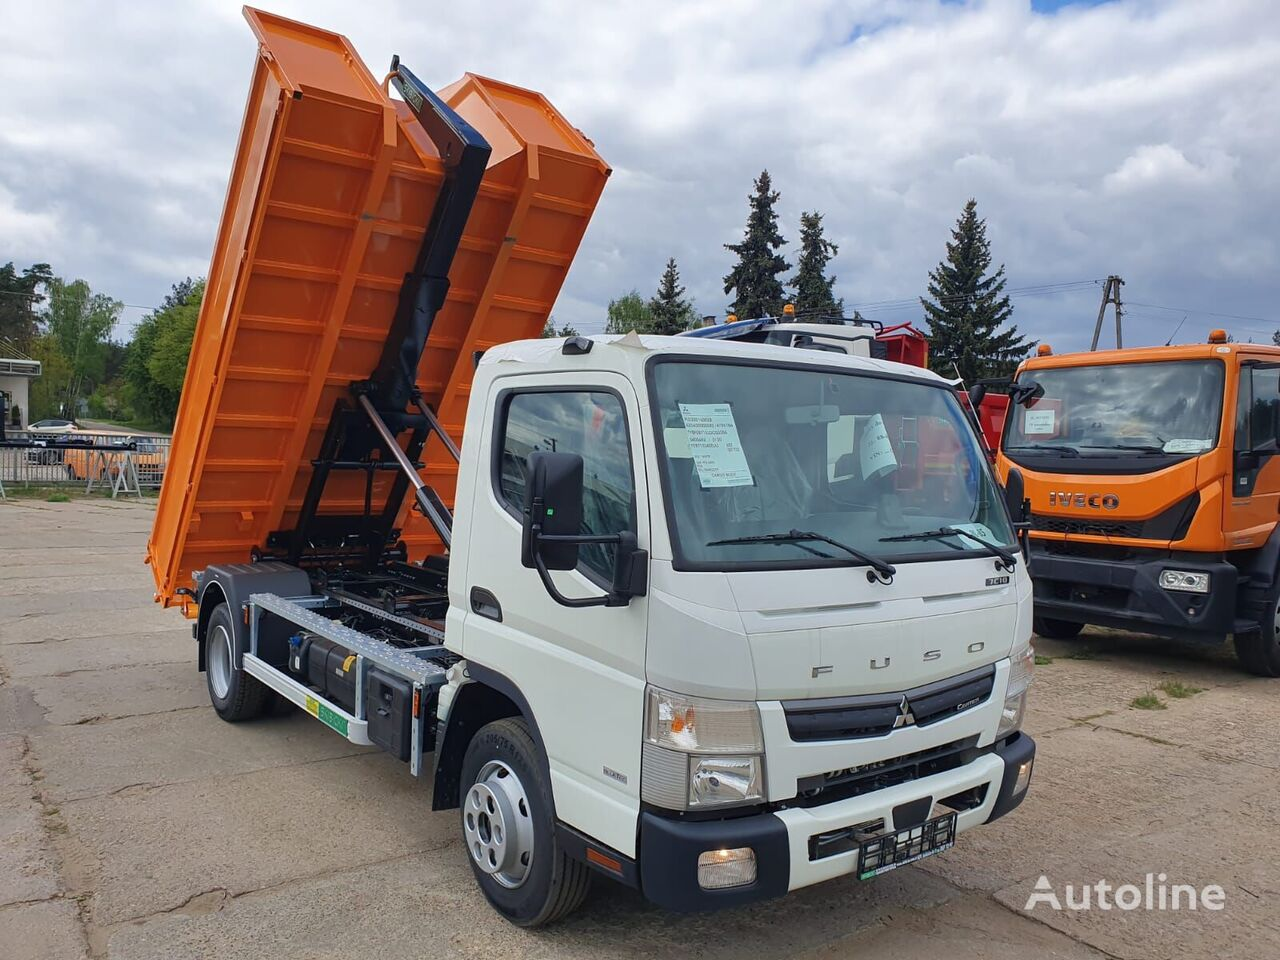 new Mitsubishi Fuso 7c18 hook lift truck